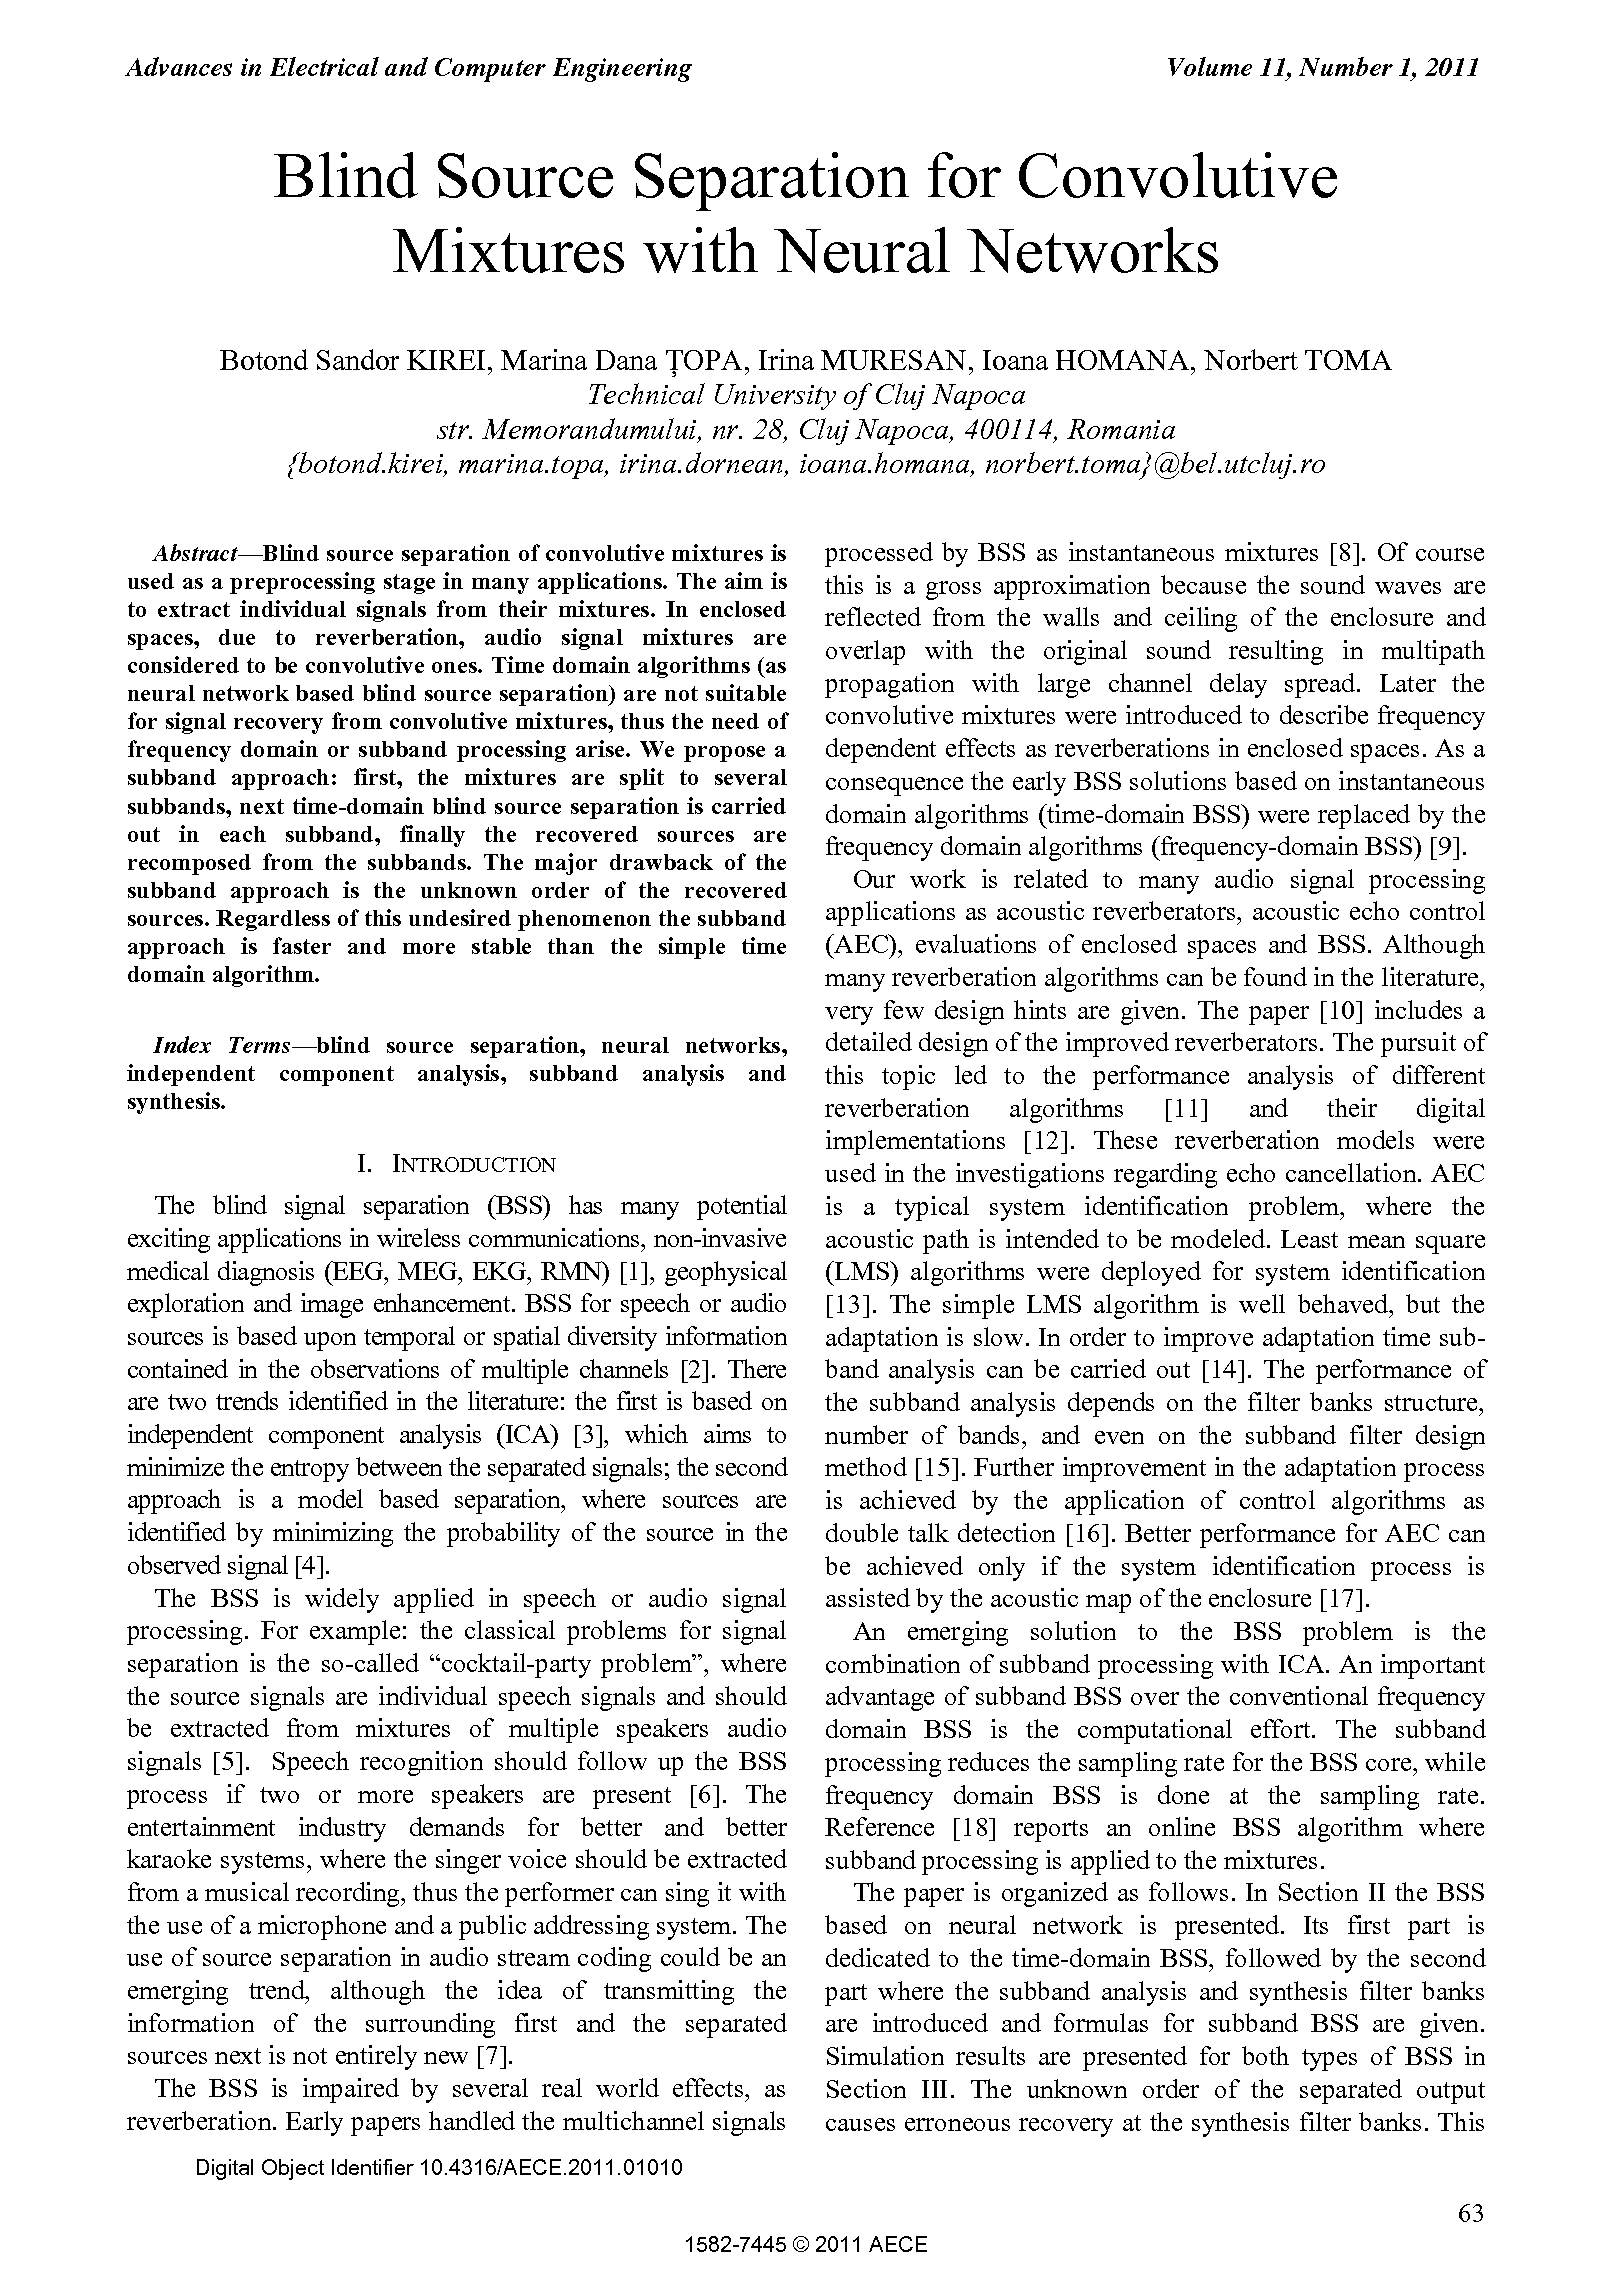 PDF Quickview for paper with DOI:10.4316/AECE.2011.01010